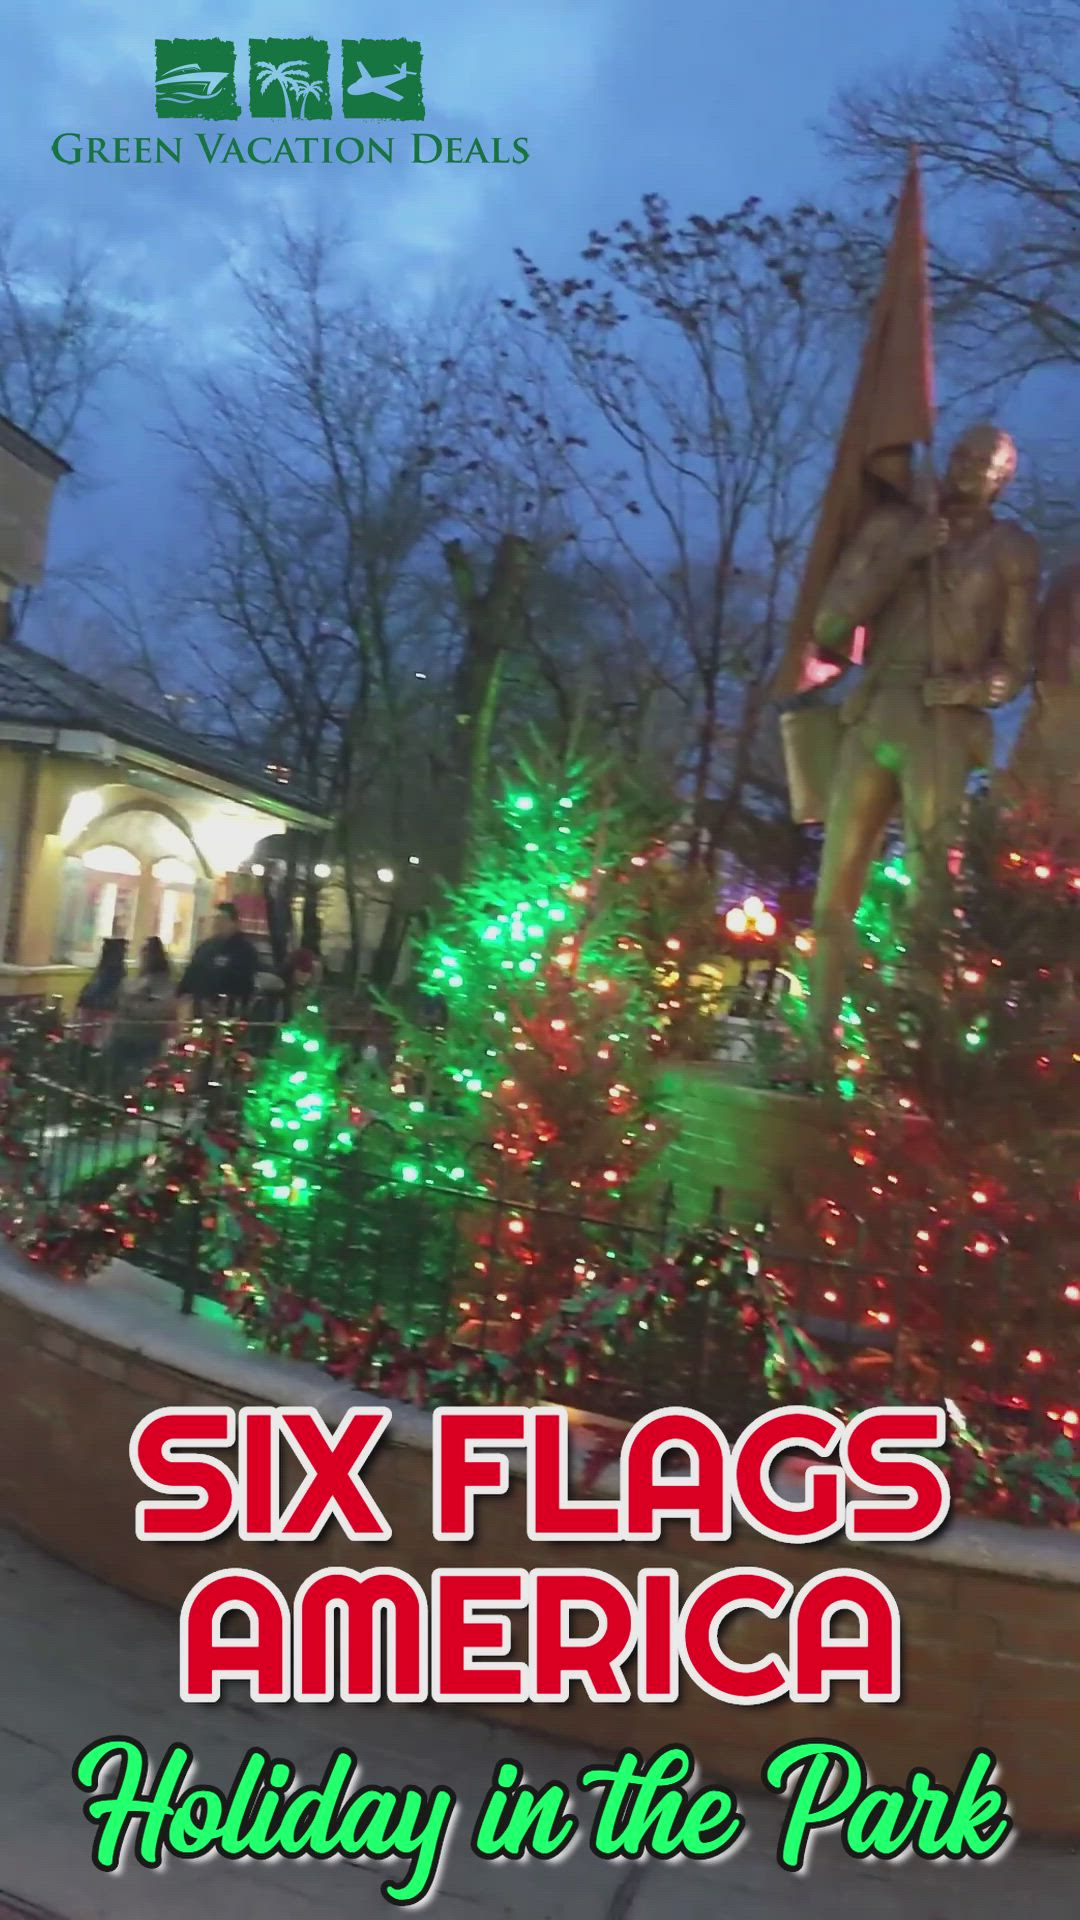 Six Flags America Christmas 2019 Holiday In The Park Video Green Vacation Deals Video Video Holiday Christmas Vacation Destinations Christmas Travel Destinations